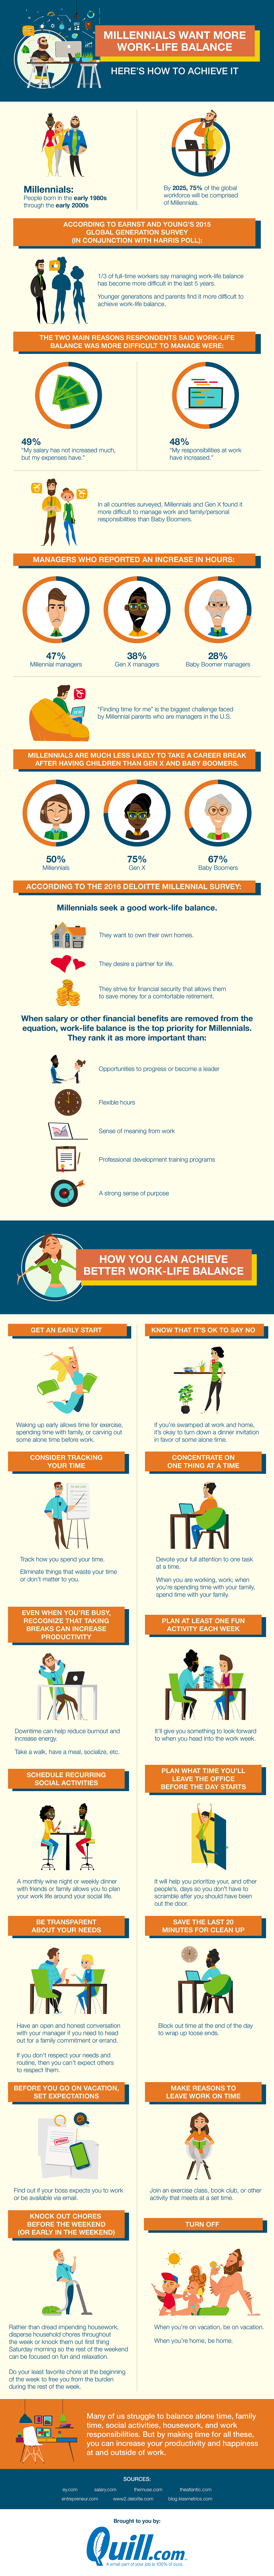 How Millennials Can Achieve The Work-Life Balance? - Infographic